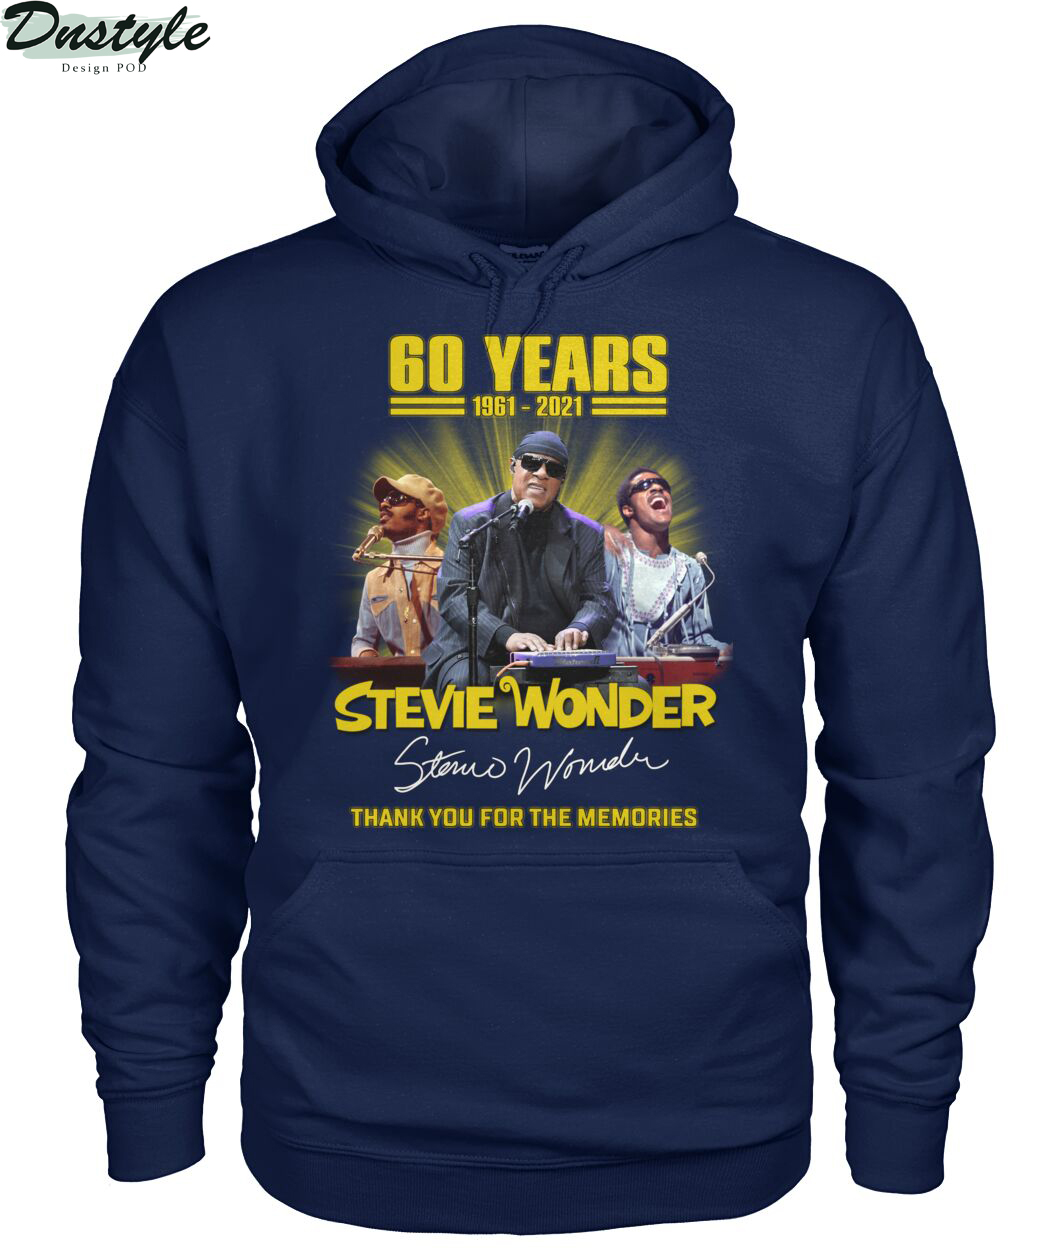 60 years Stevie Wonder signature thank you for the memories hoodie